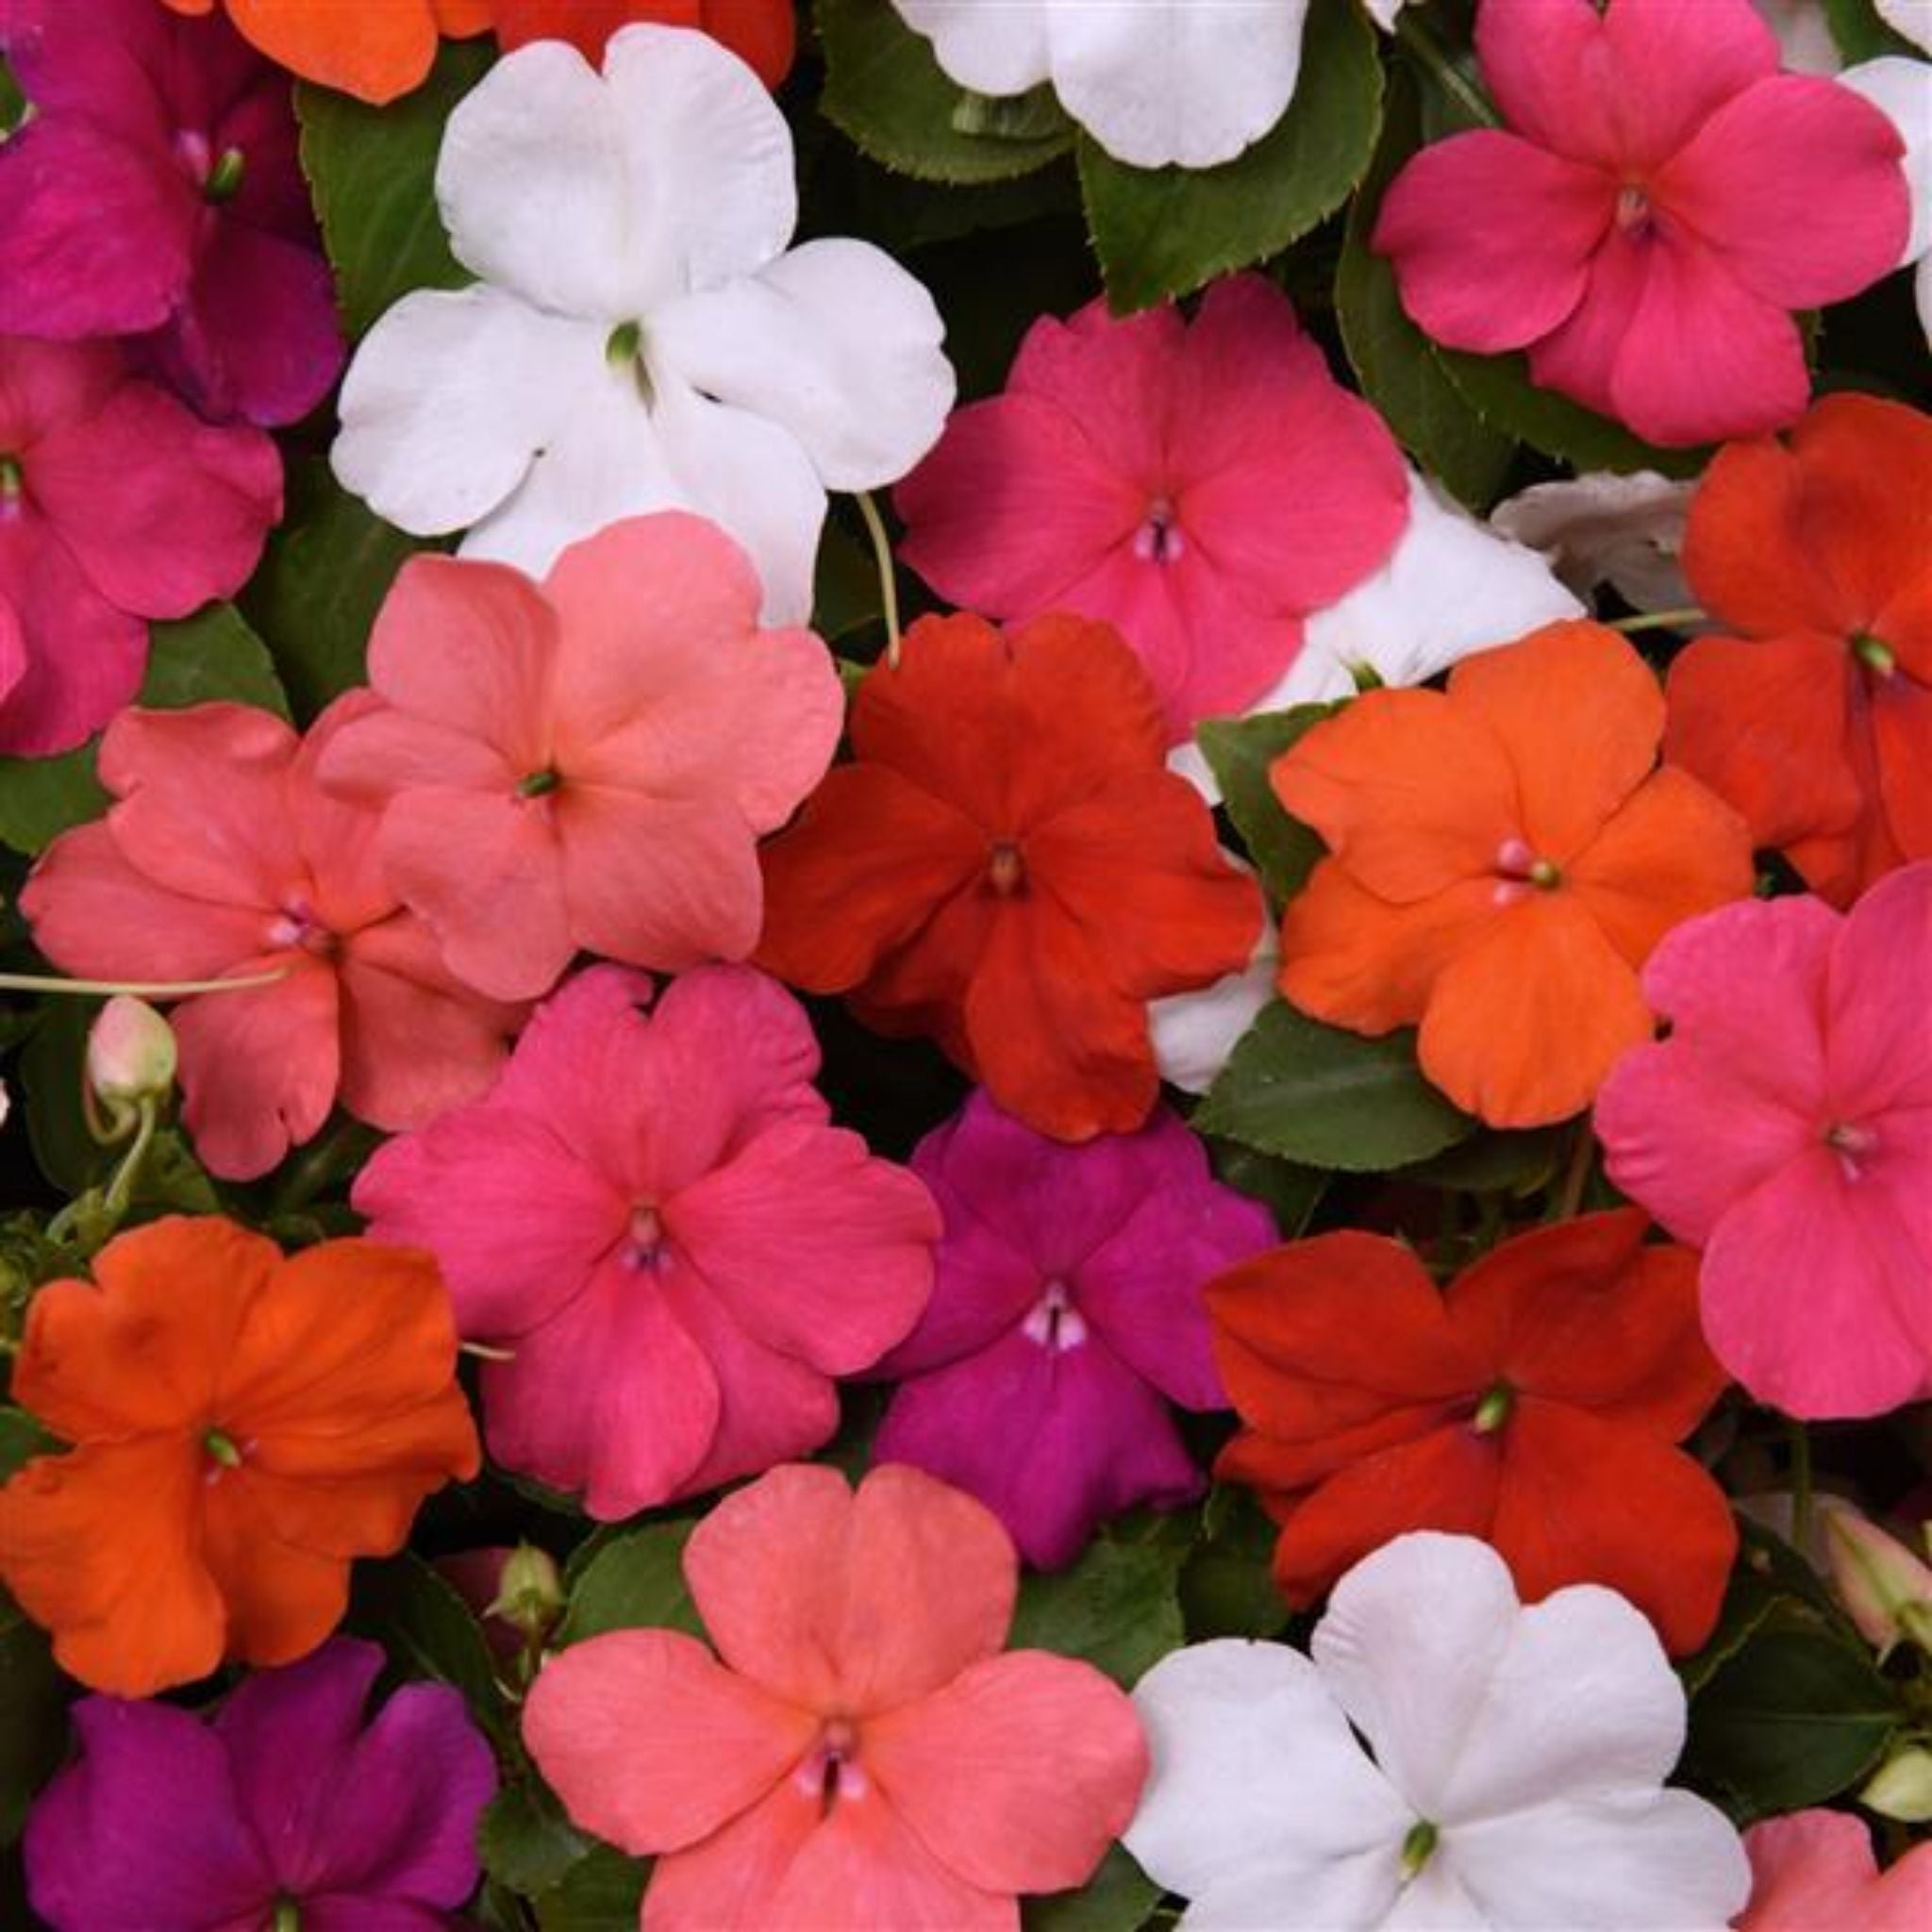 Impatiens Flats for sale kollmans greenhouse twinsburg oh